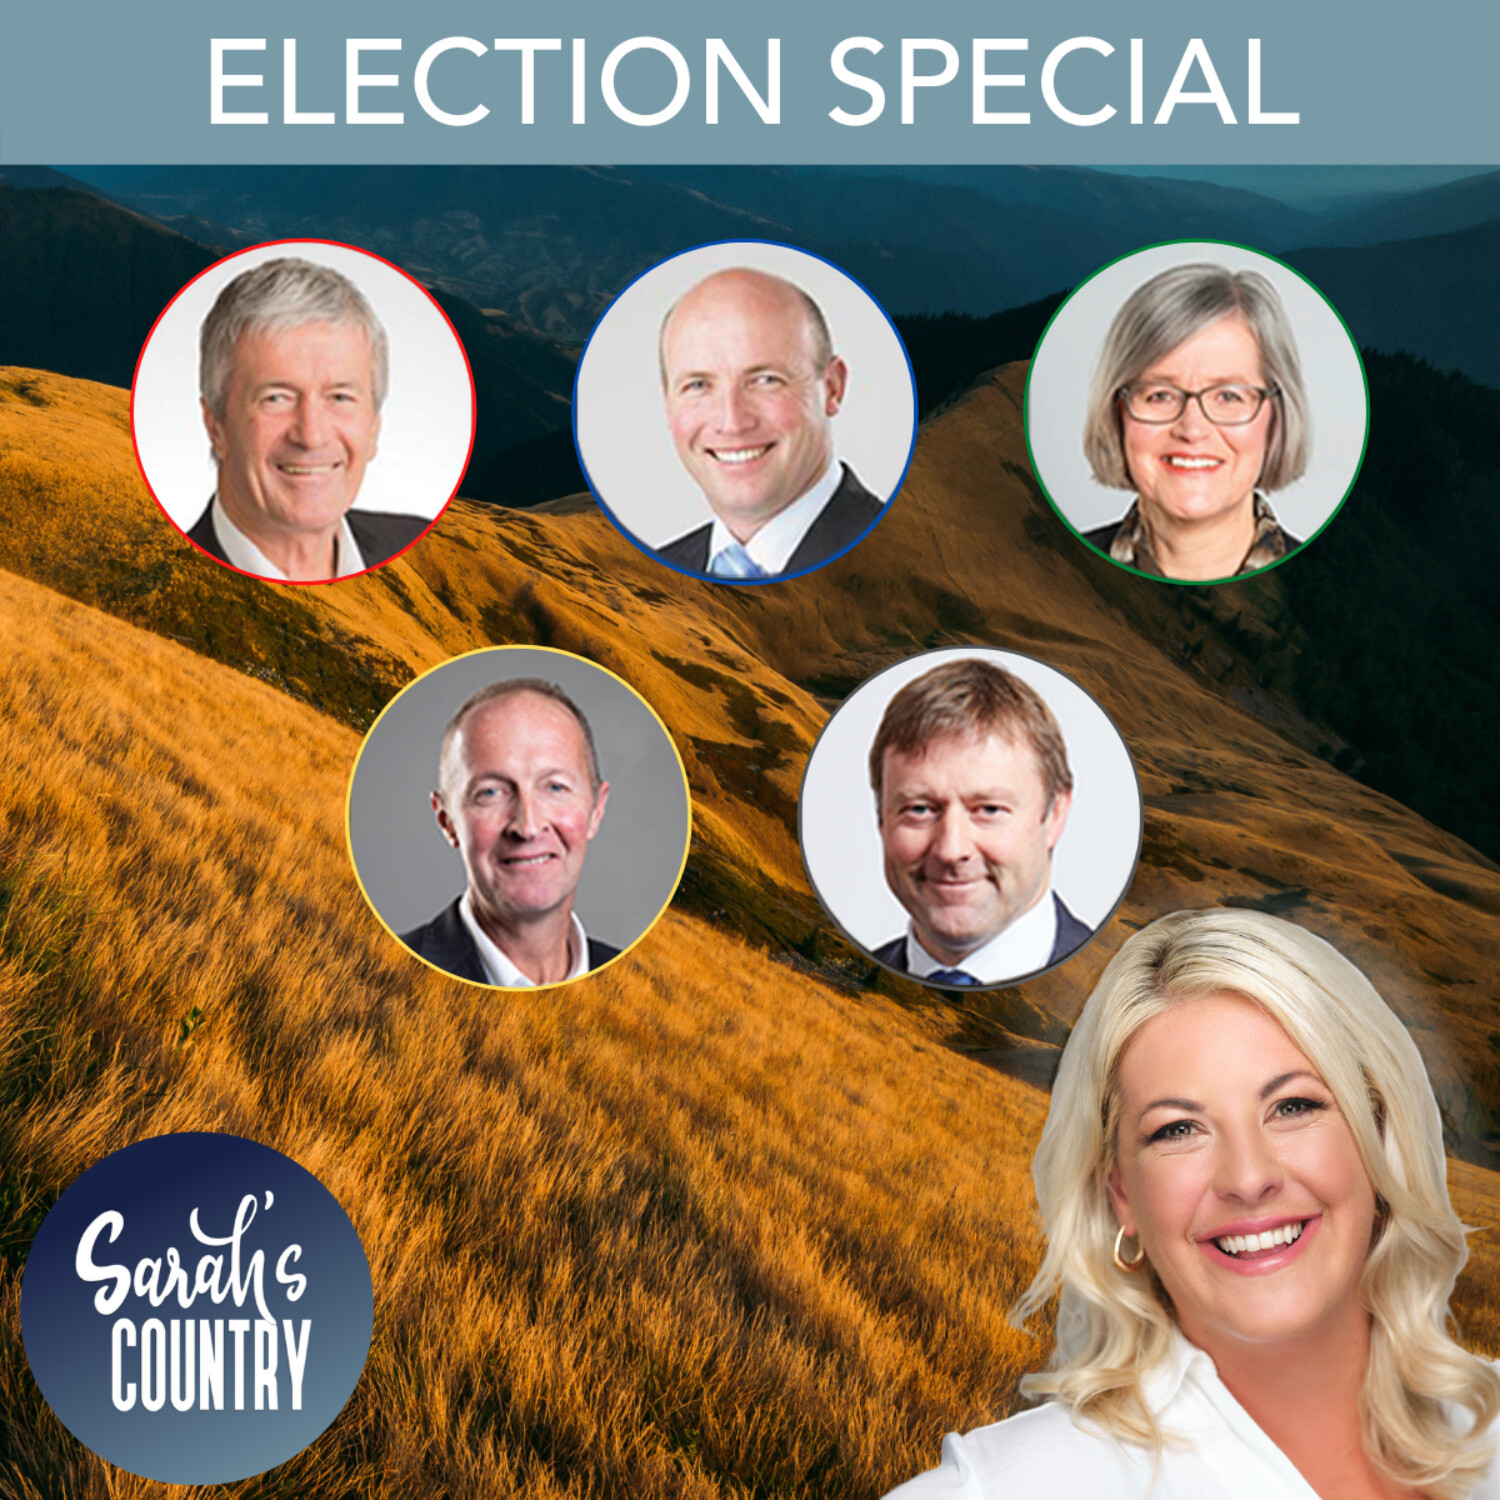 Election Special : Green Party's Eugenie Sage on Conservation & Hunting